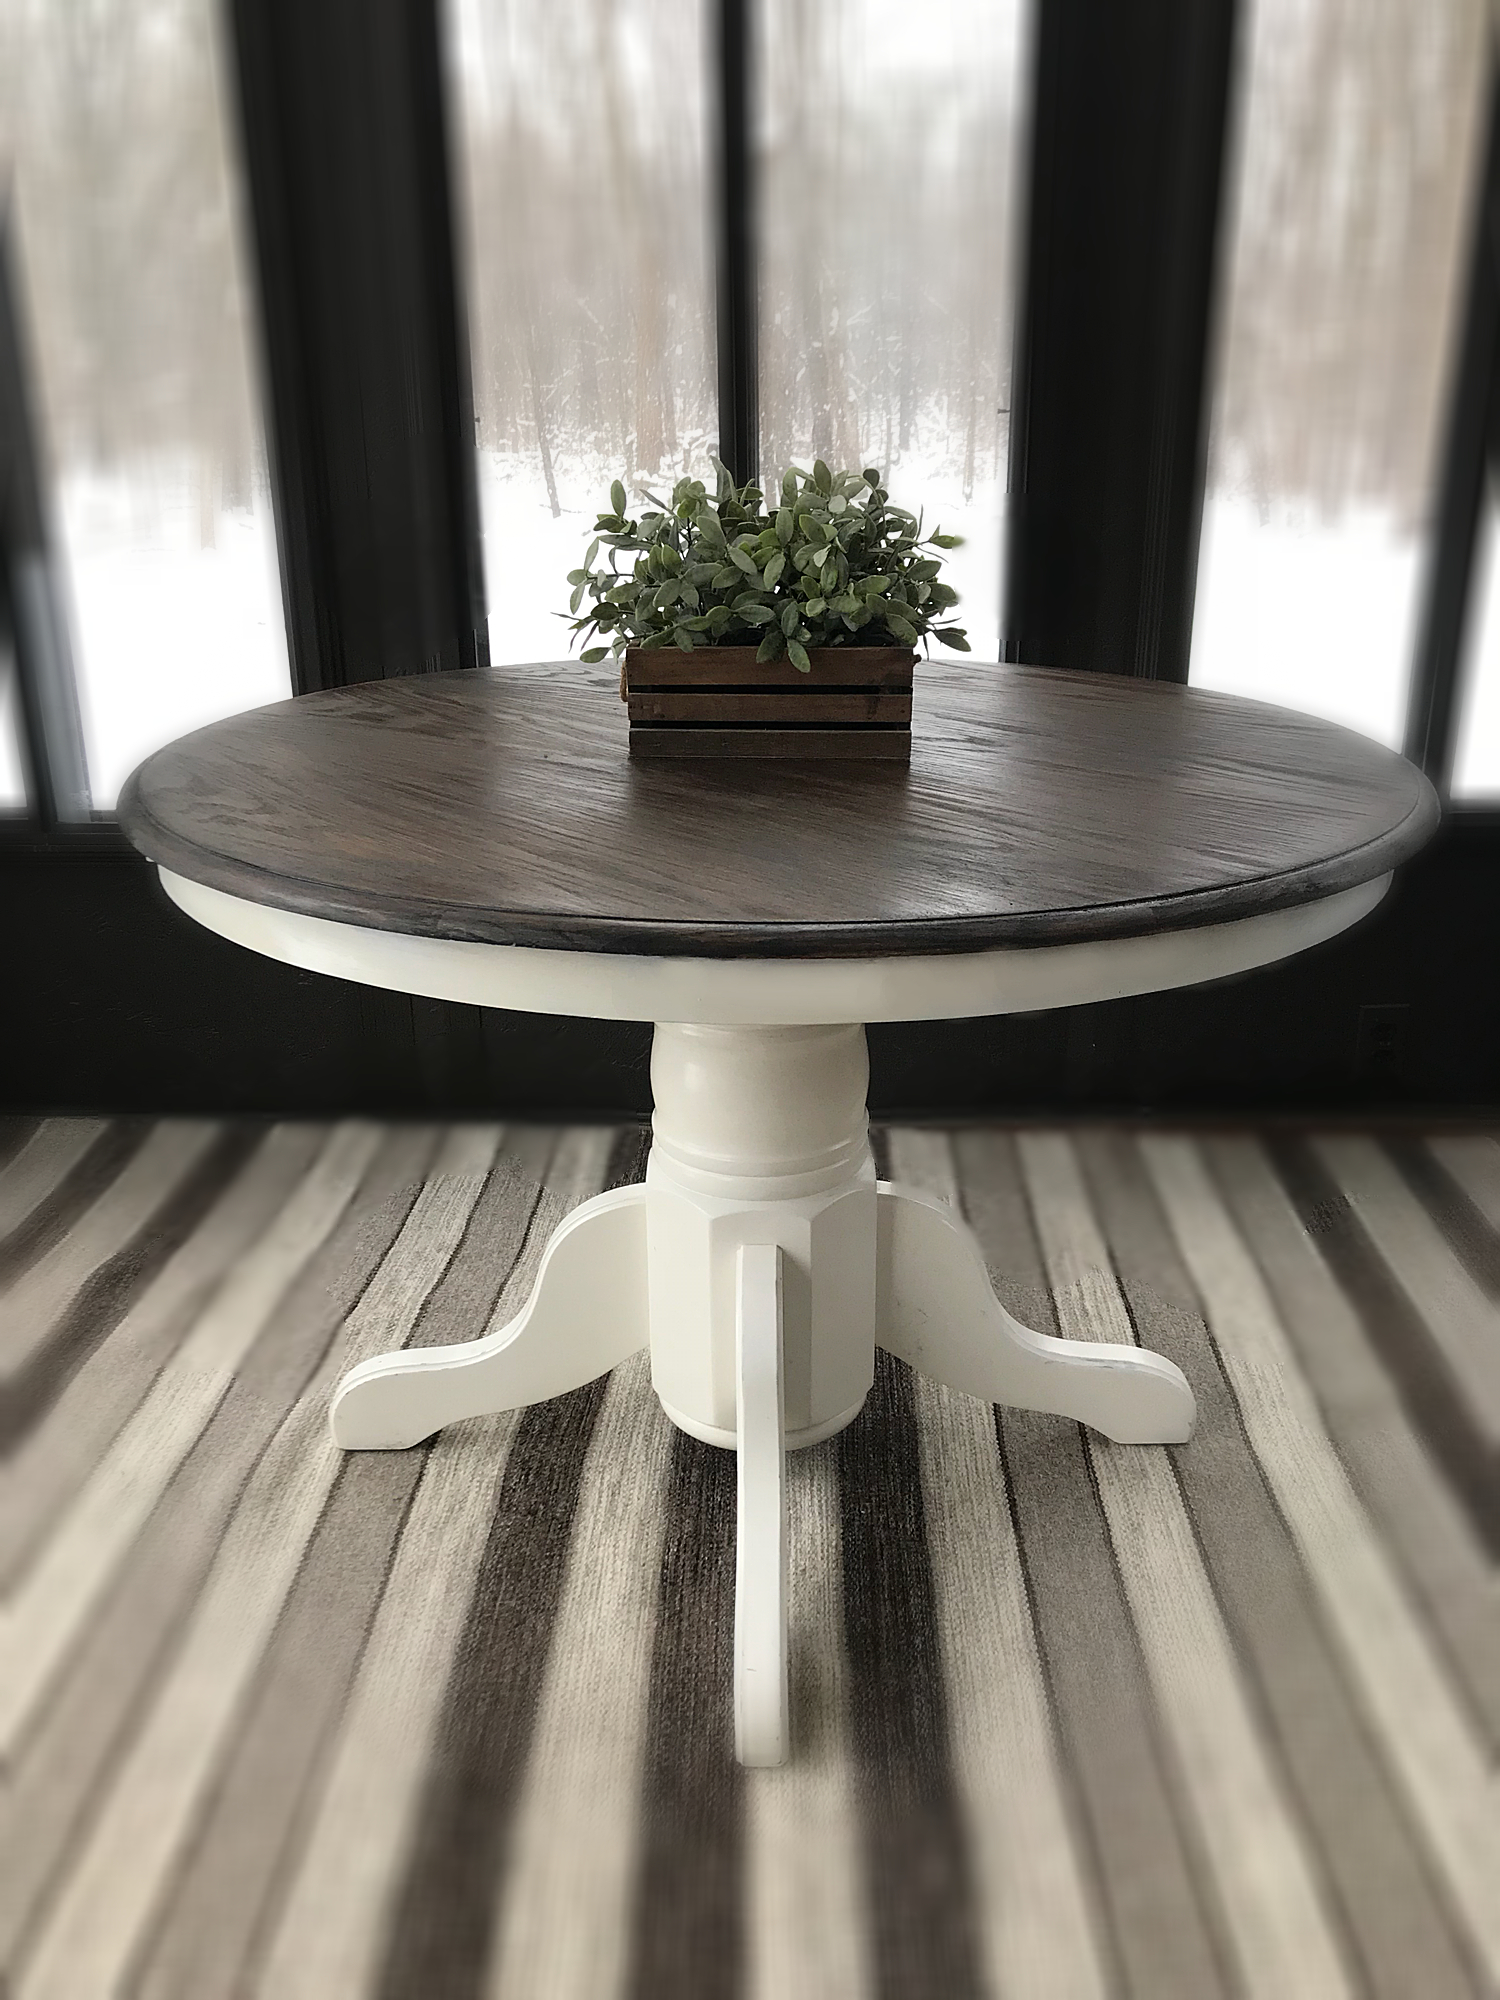 diy dining table ideas carpet and vintage wooden accent rustic entryway farmhouse miniature tiffany style lamps simple end plans legged small round with drawer sturdy legs behind